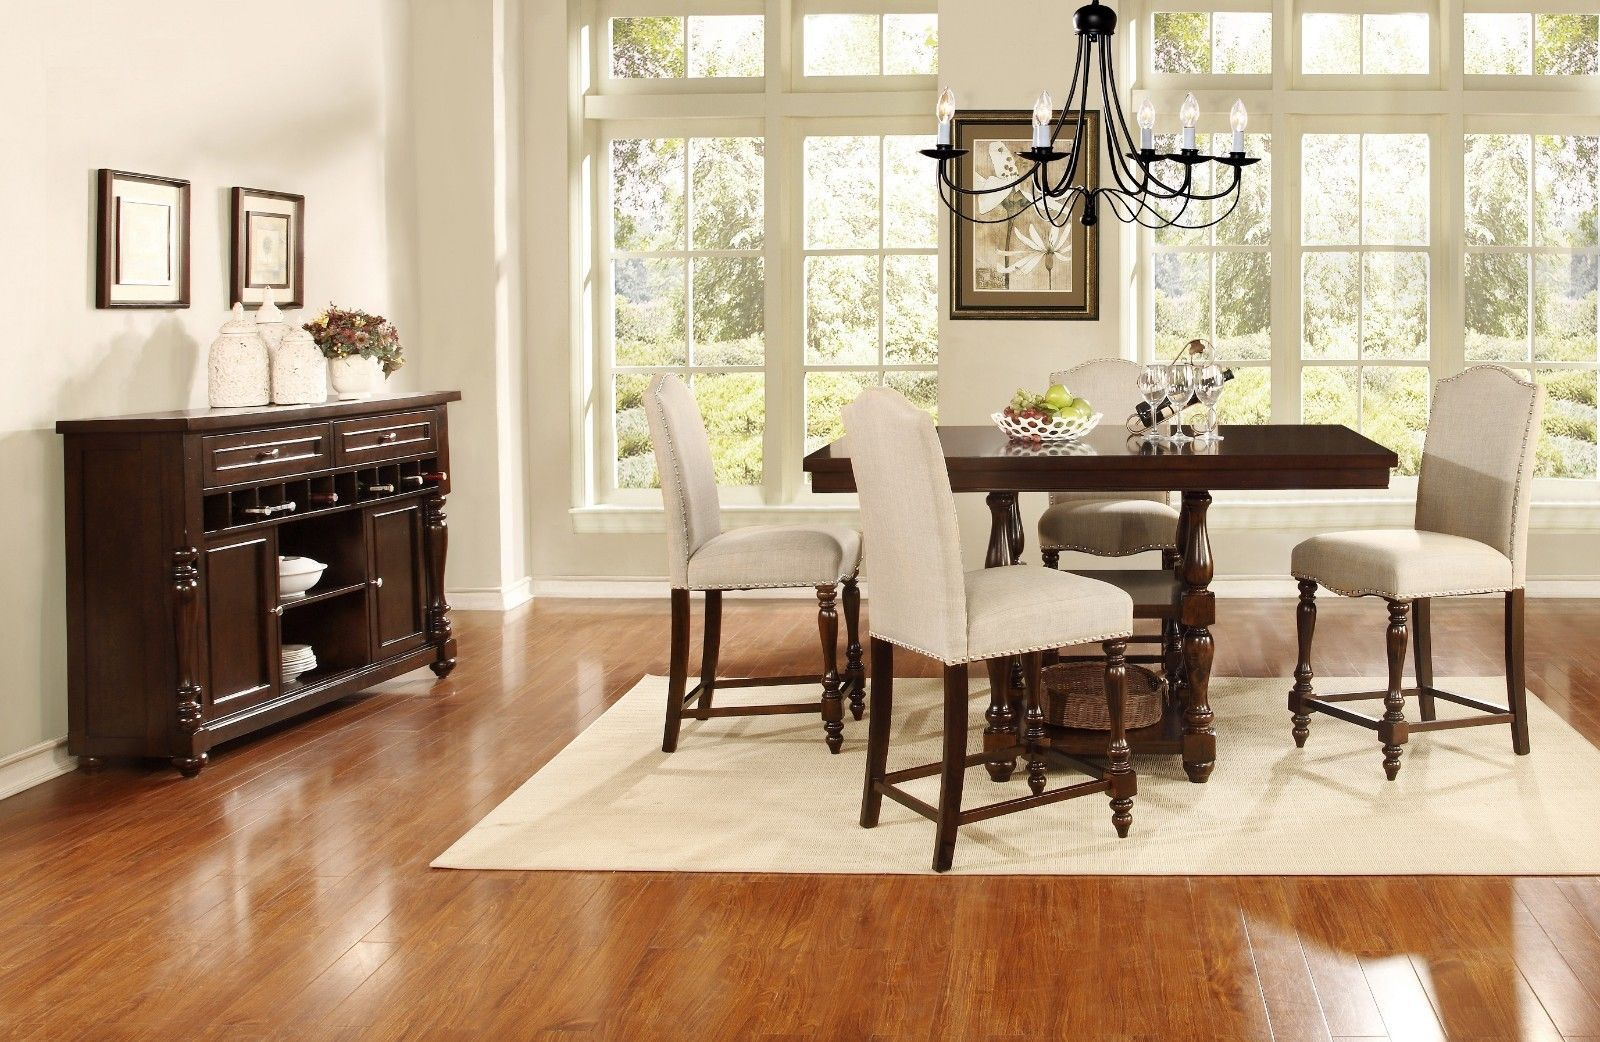 Mcferran RD1889 OAK PUB Dining Room Table BLACK Counter Heigh Traditional Style